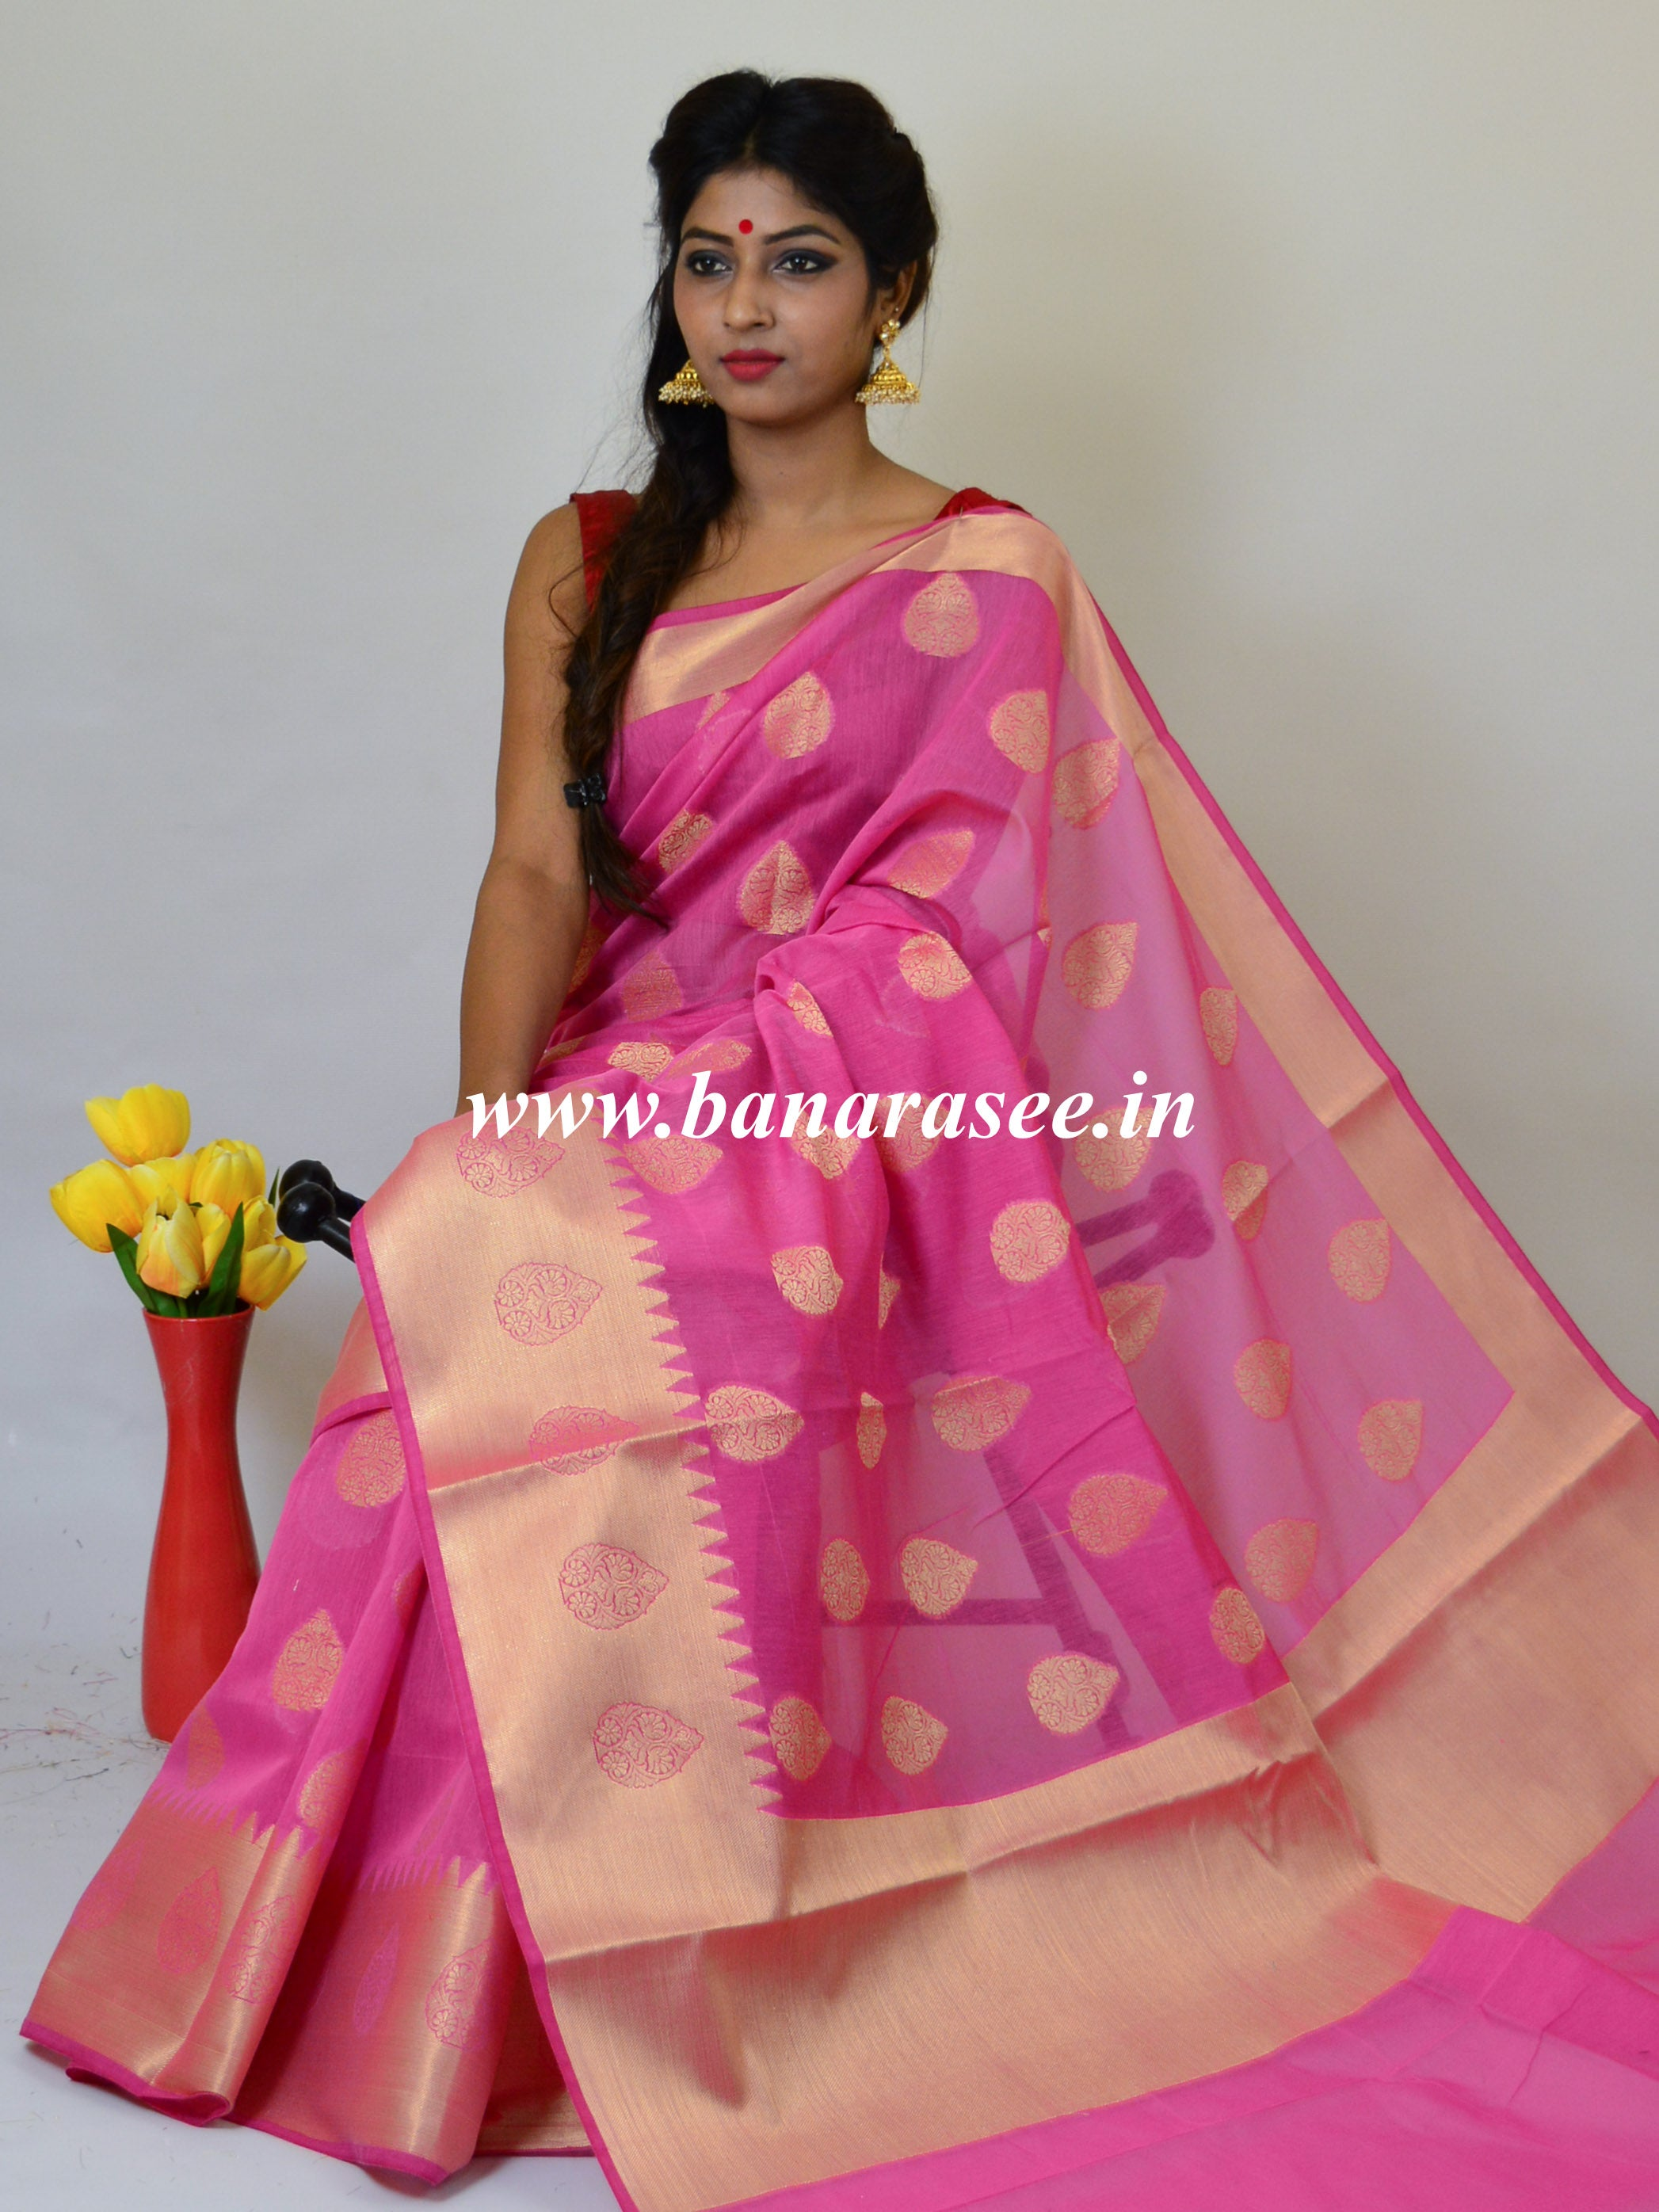 Banarasee Handloom Cotton Silk Mix Broad Border Sari-Pink